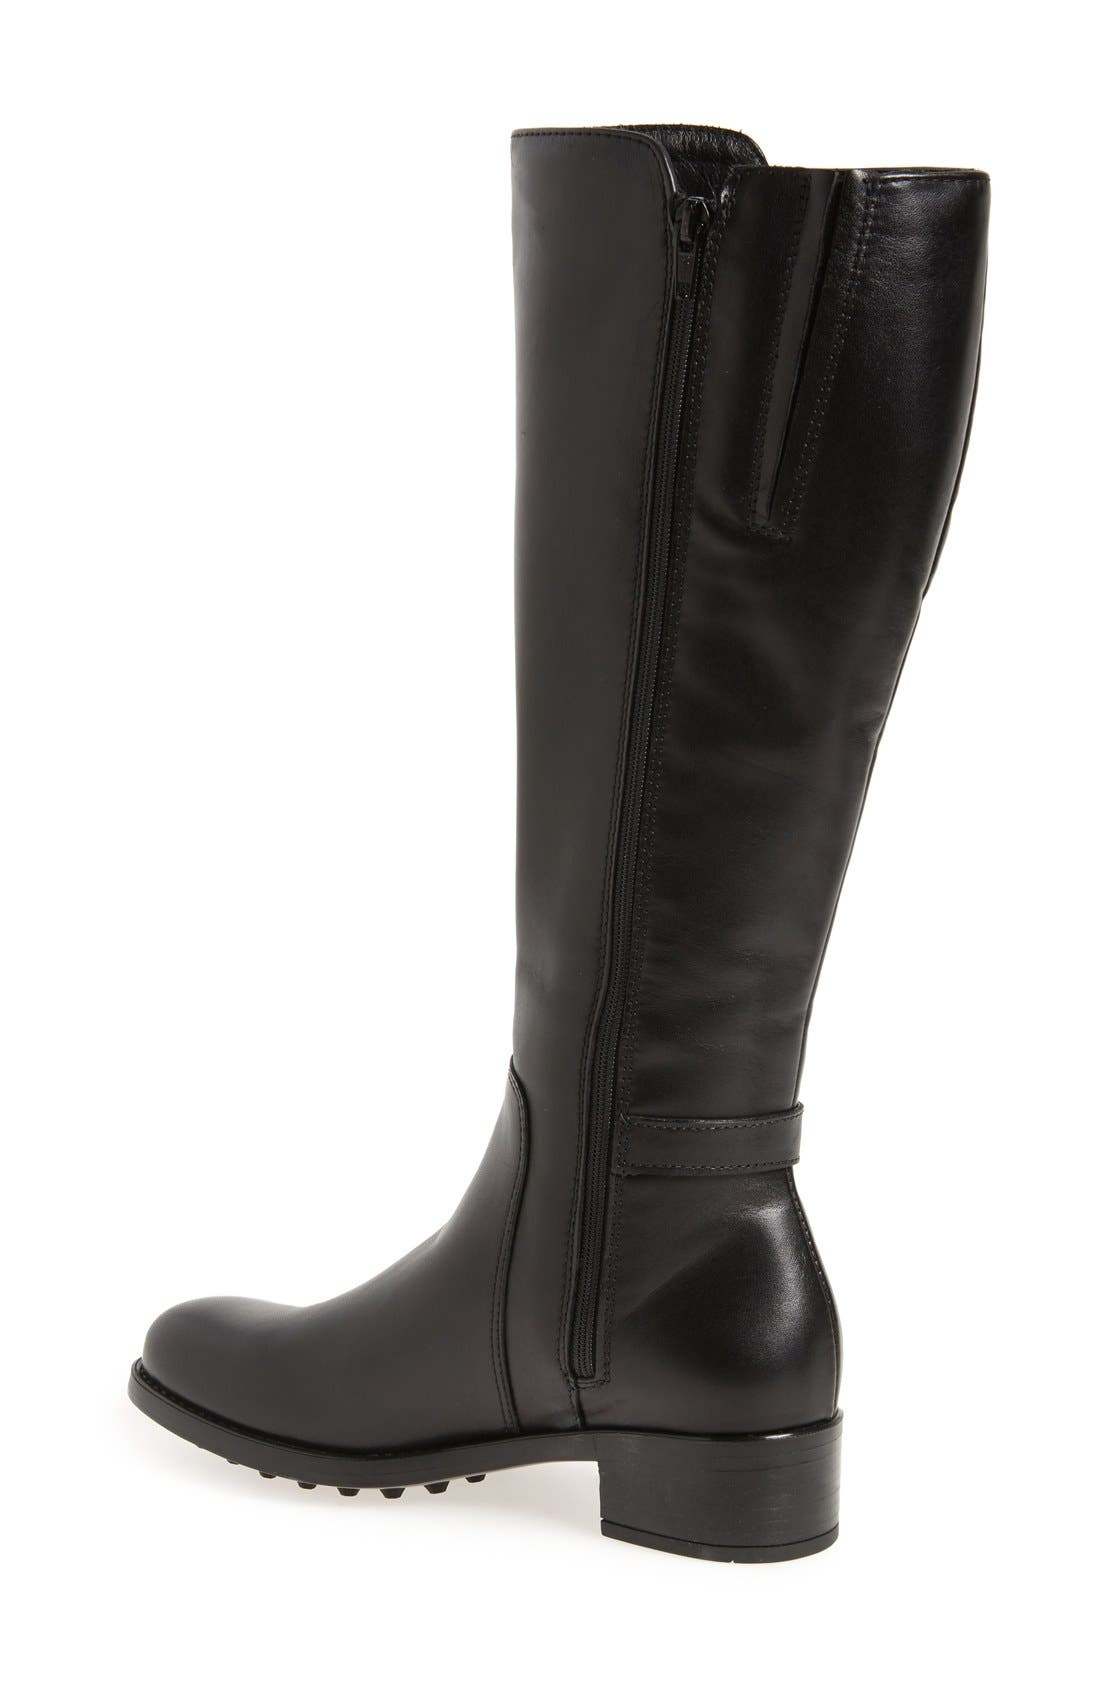 Silvana Waterproof Riding Boot,                             Alternate thumbnail 2, color,                             BLACK LEATHER